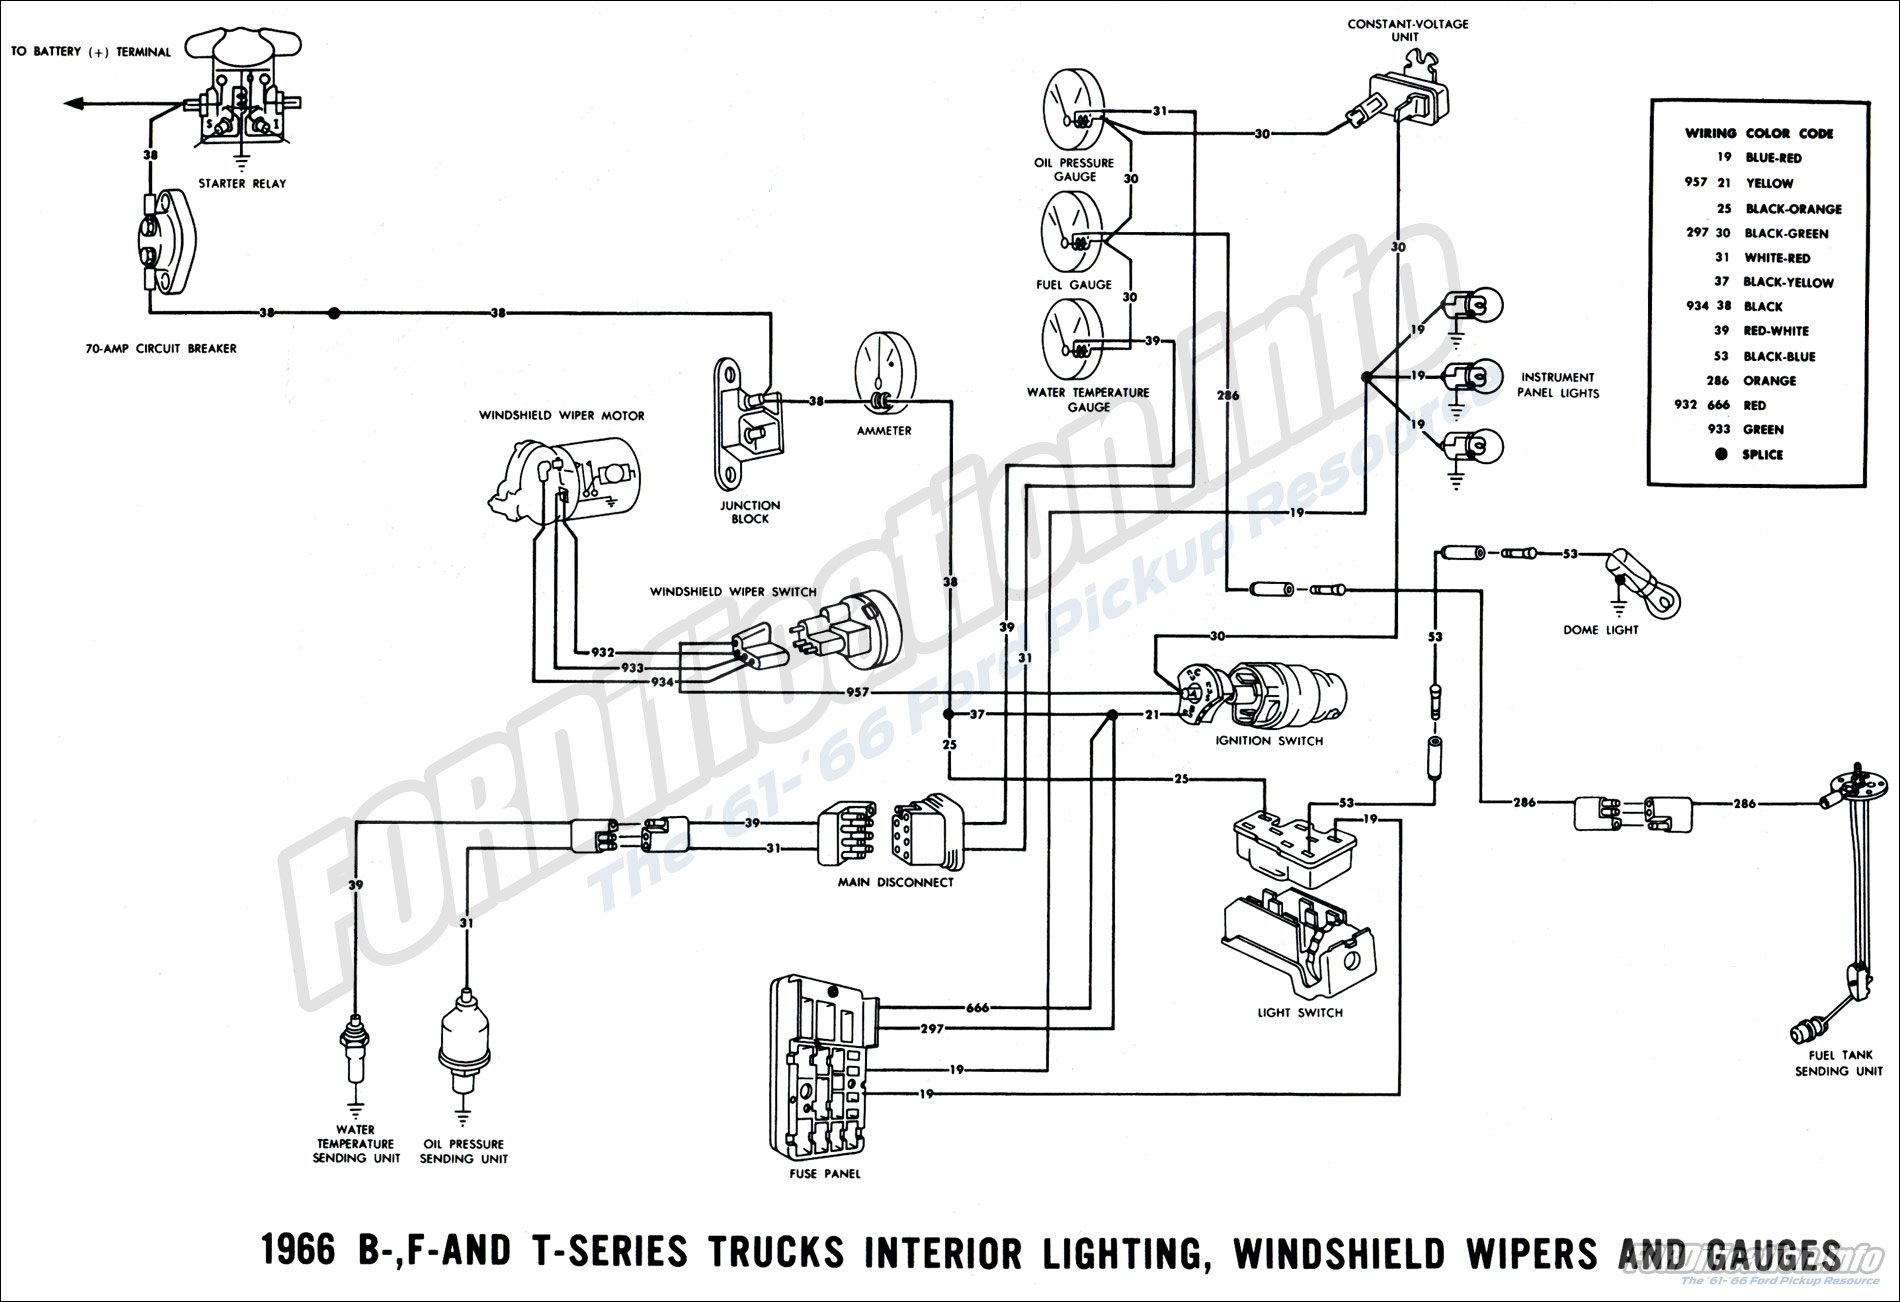 66 ford wiper wiring diagram